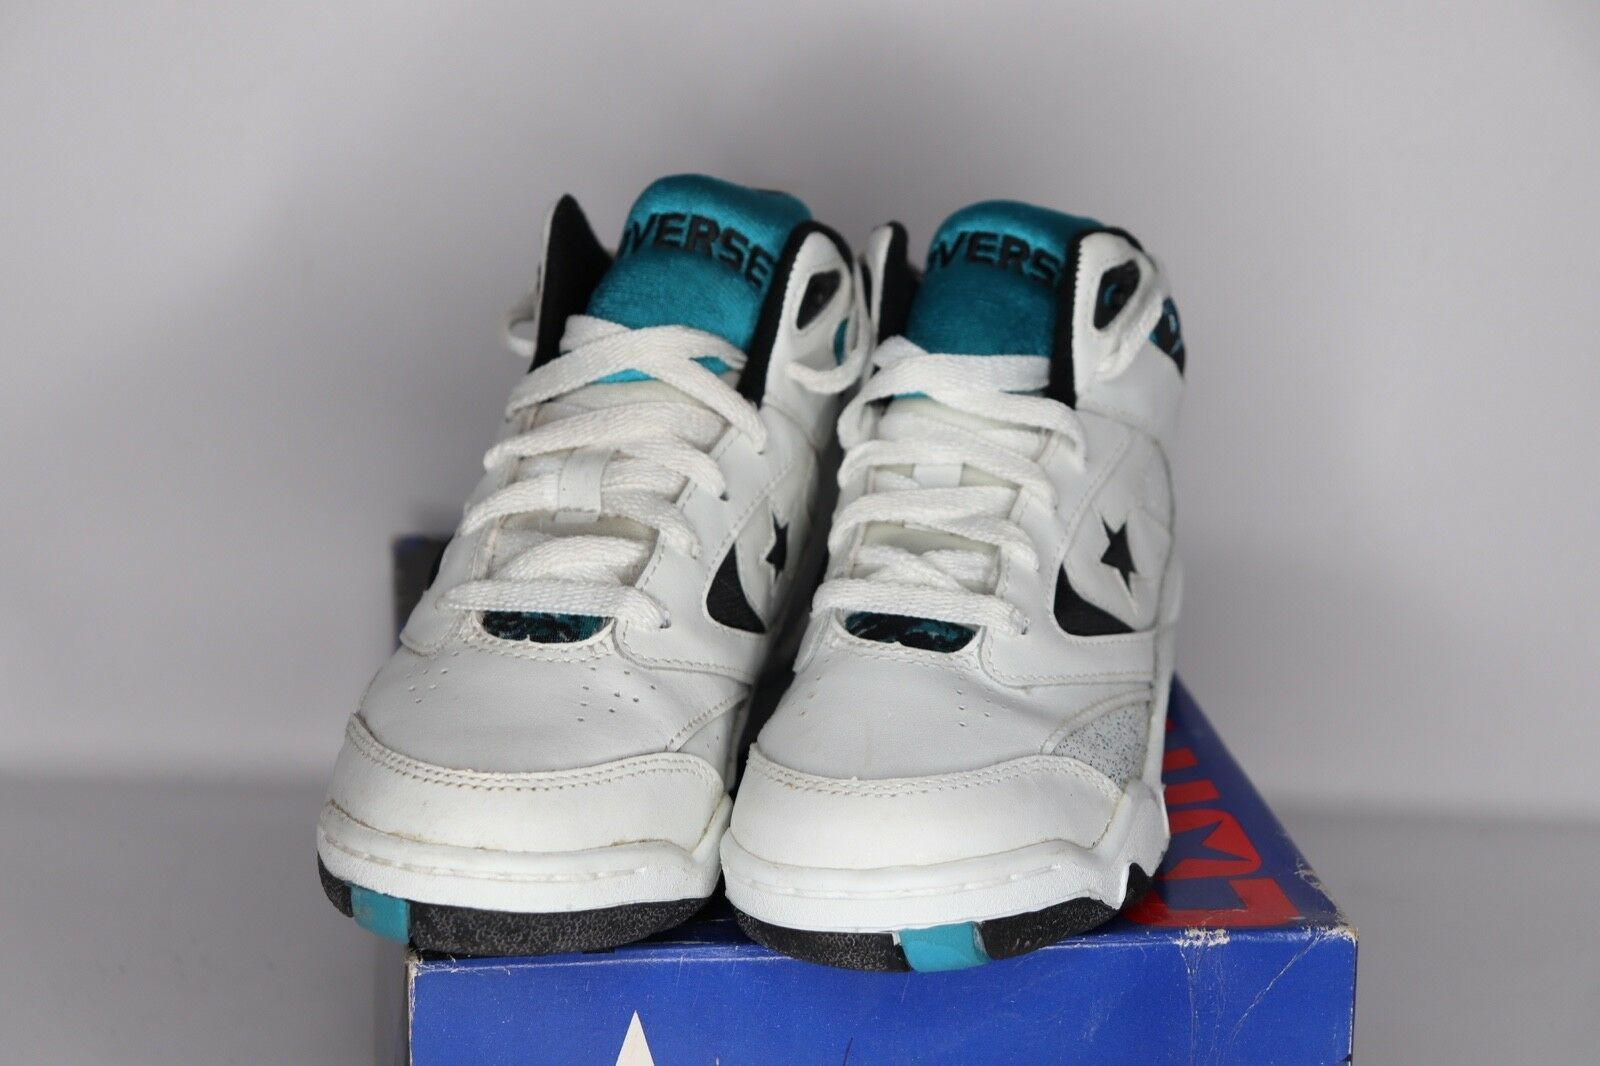 Vintage 90s New Converse Youth 3 Power Game Lea Mid Basketball Shoes White Teal